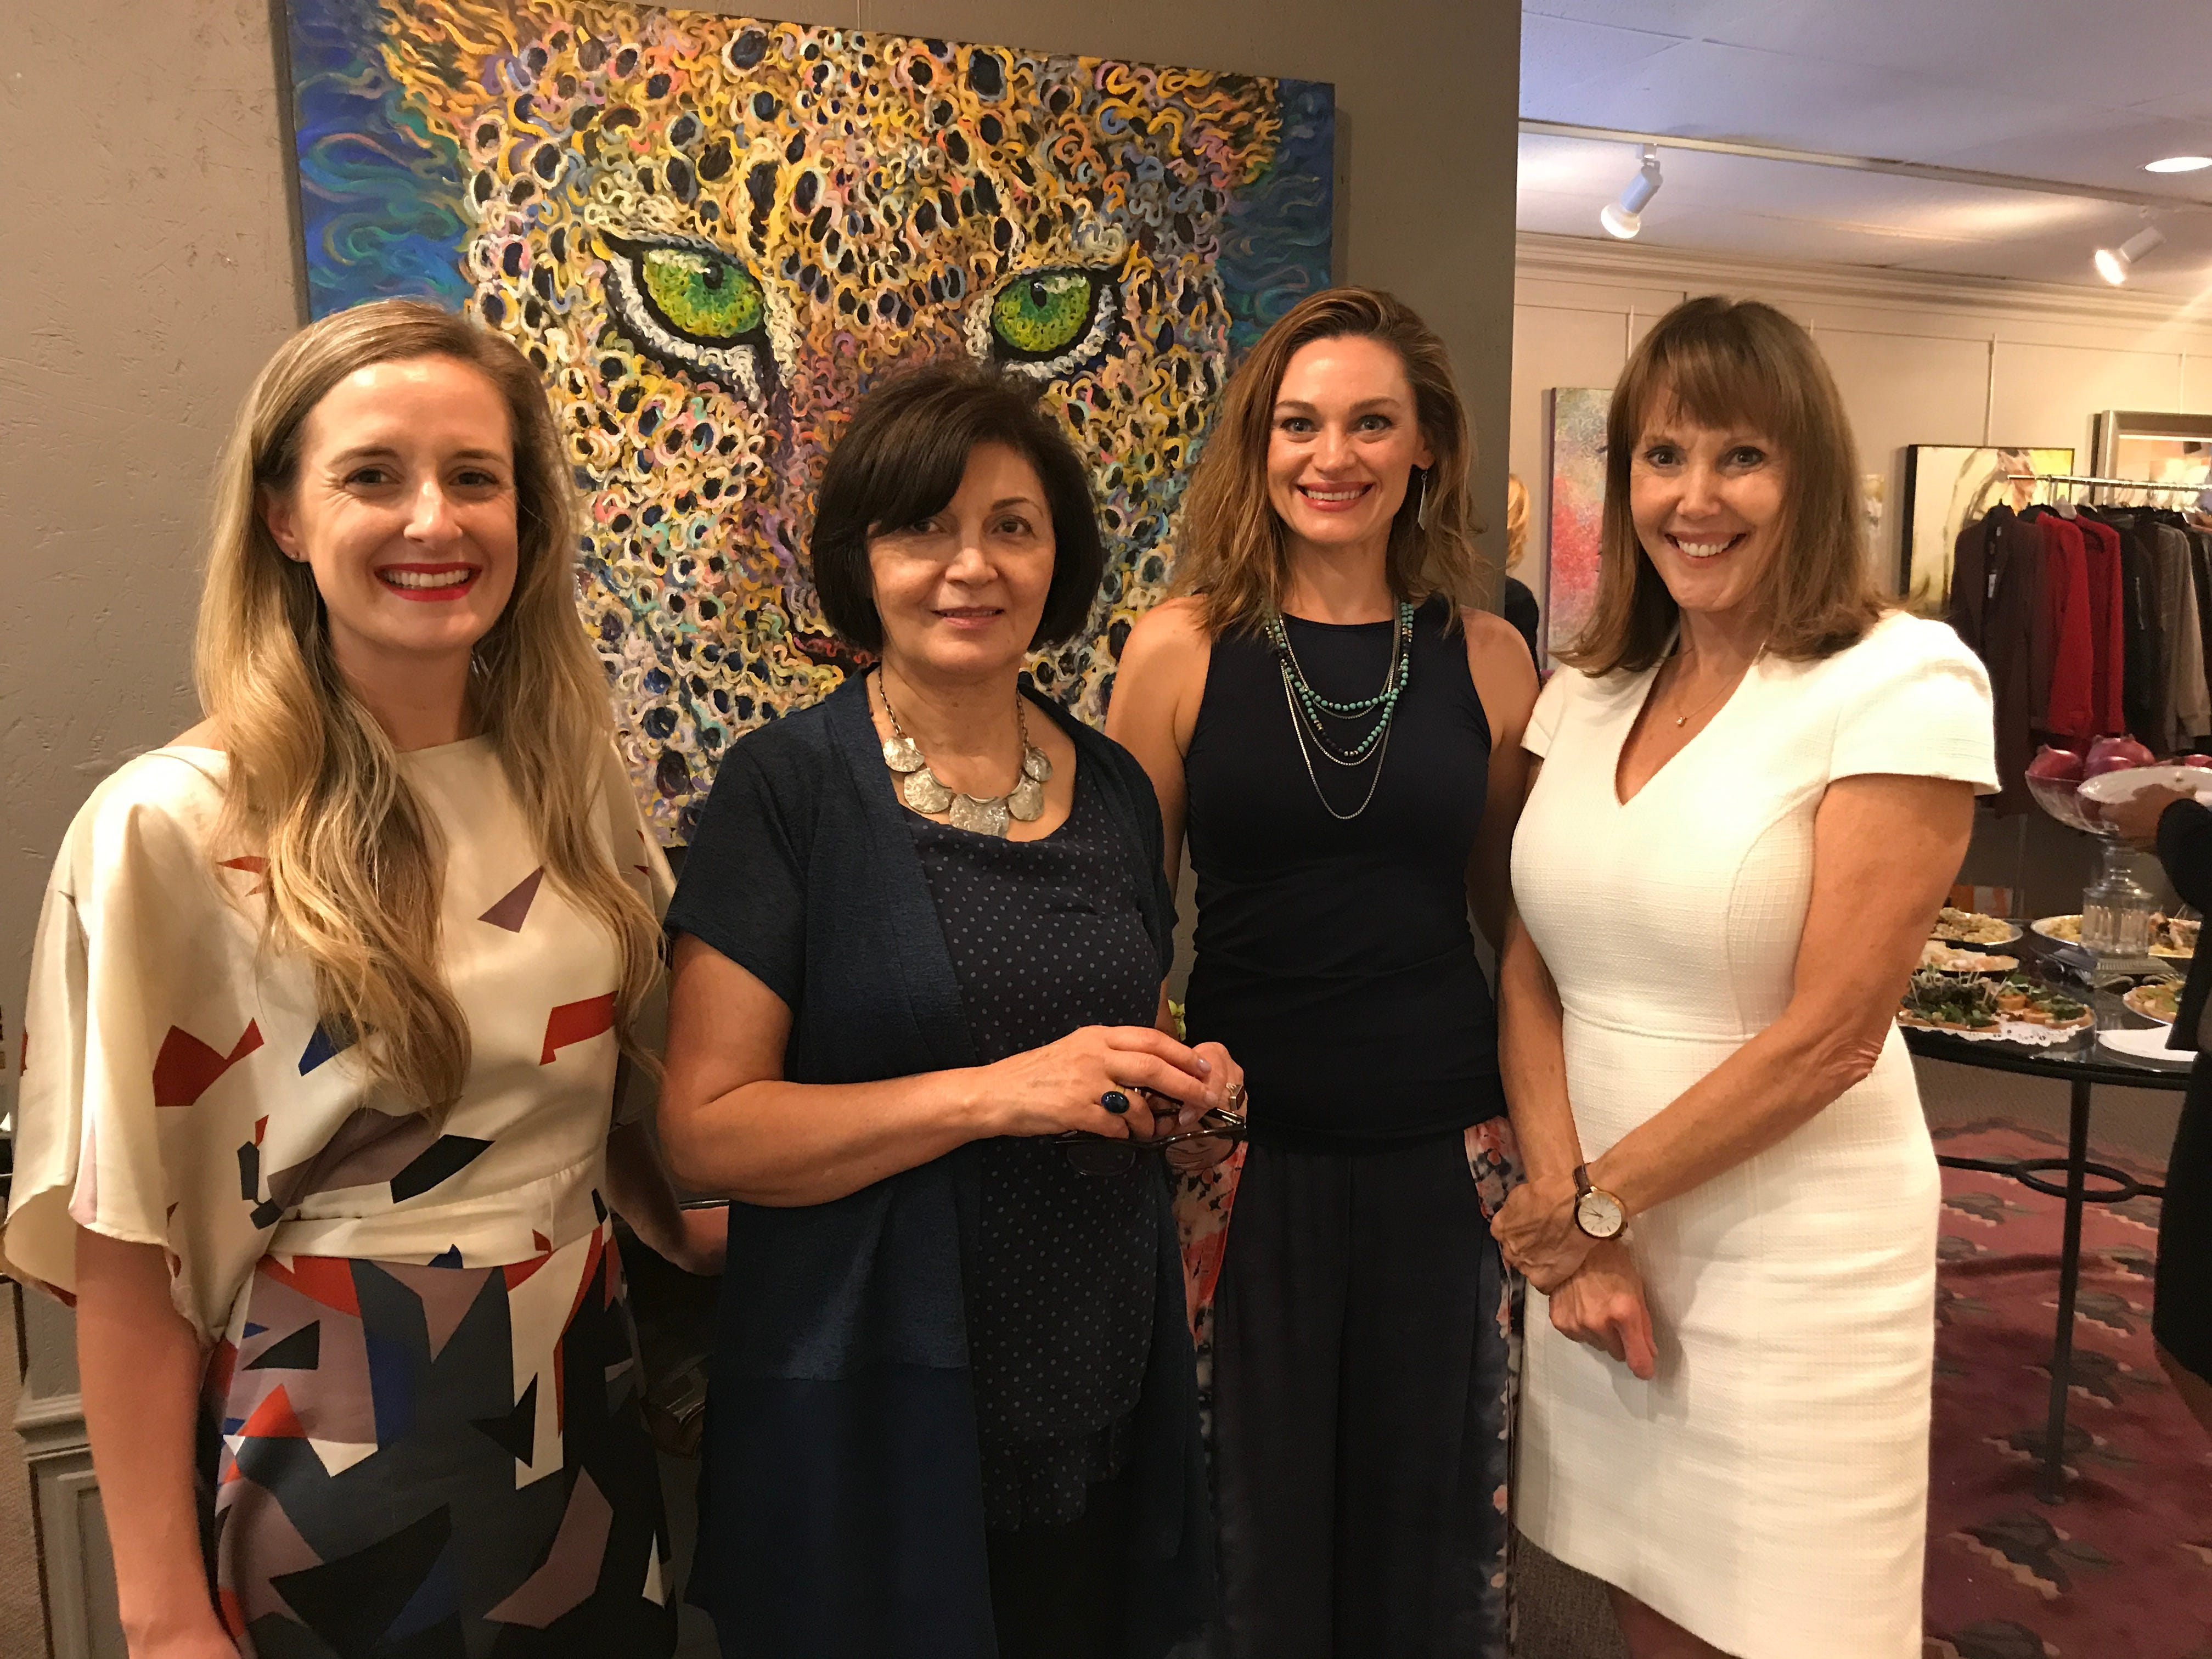 Mehri Hosseini, second from left, curator and owner of Hermitage Gallery in McLean, poses with USA TODAY's Cara Kelly, left, Sytera Field and Jayne O'Donnell (on right). Field now hopes to feature some of Hermitage's art in an expanded studio the yoga instructor hopes to open soon.